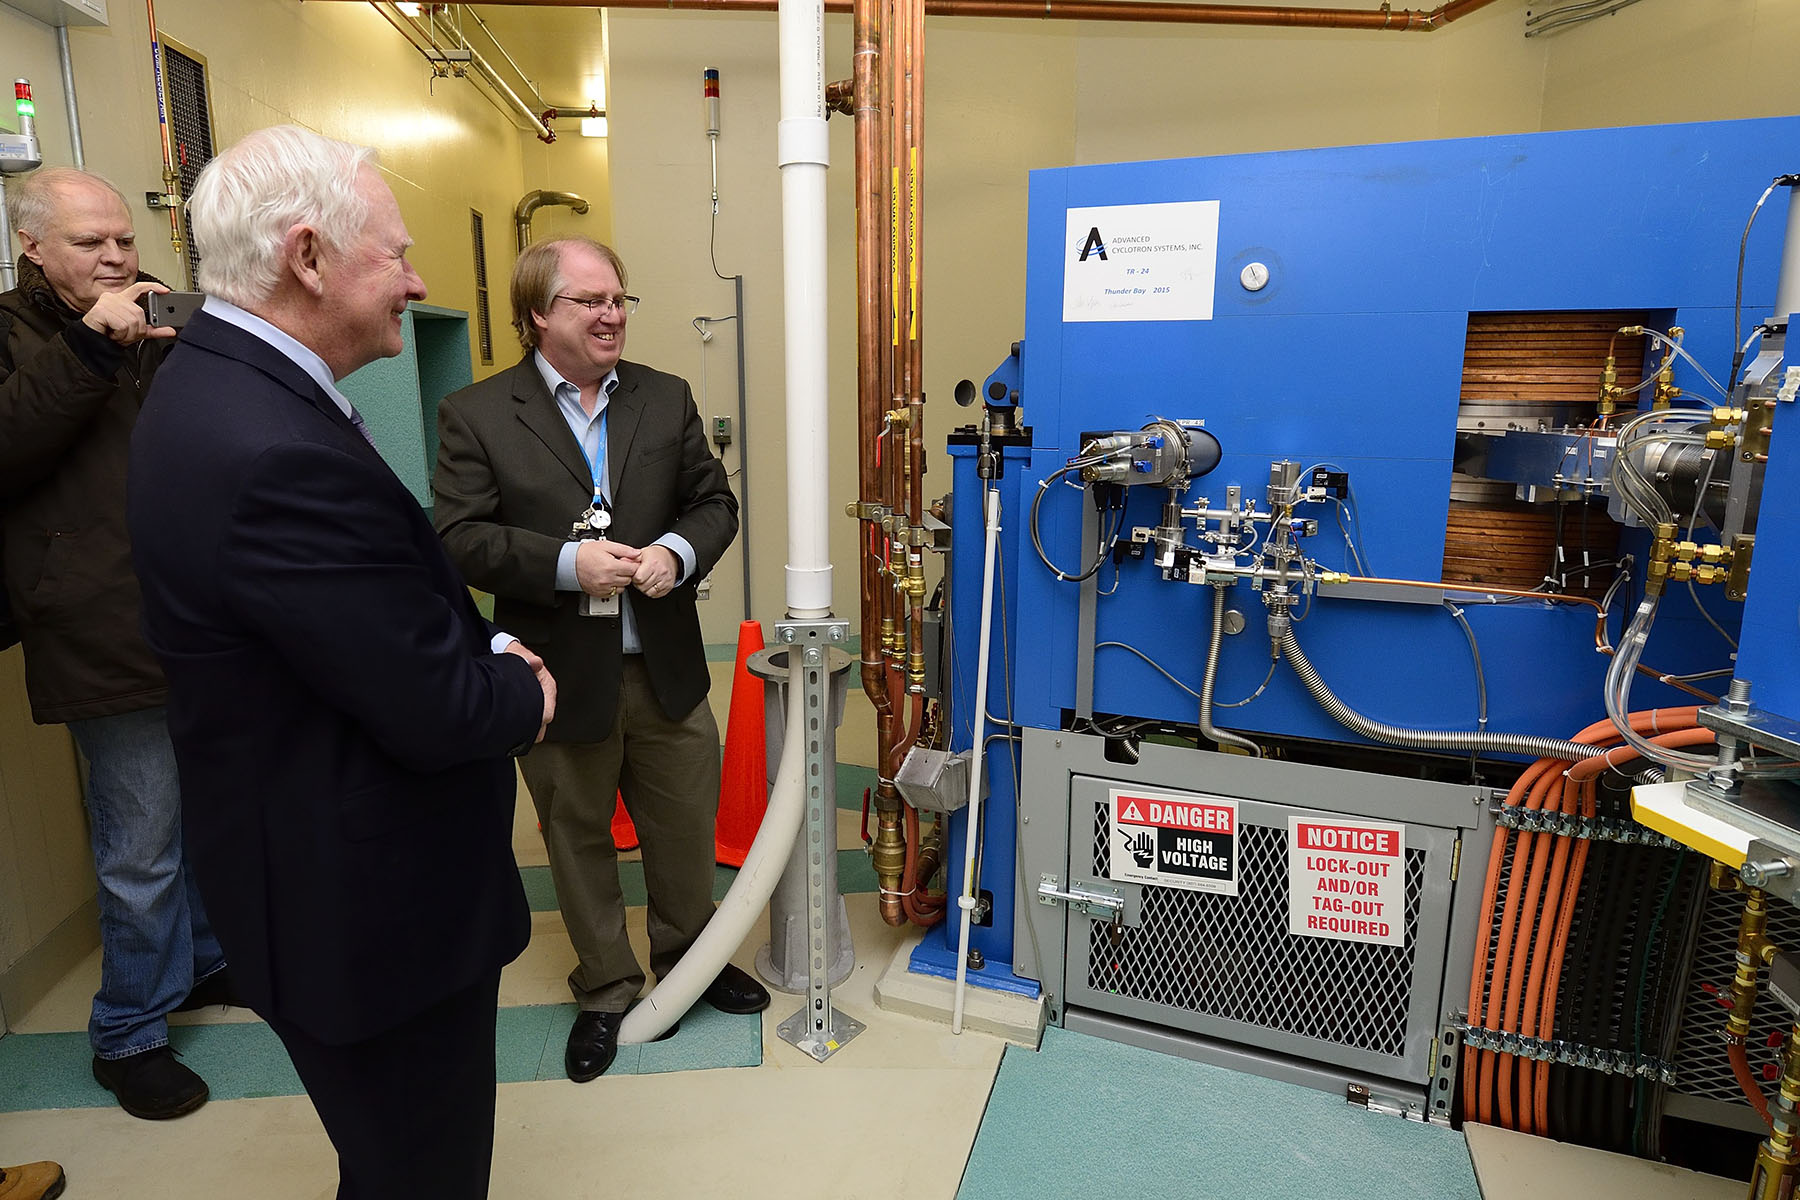 His Excellency visited the cyclotron, which creates medical isotopes used in cancer treatment.